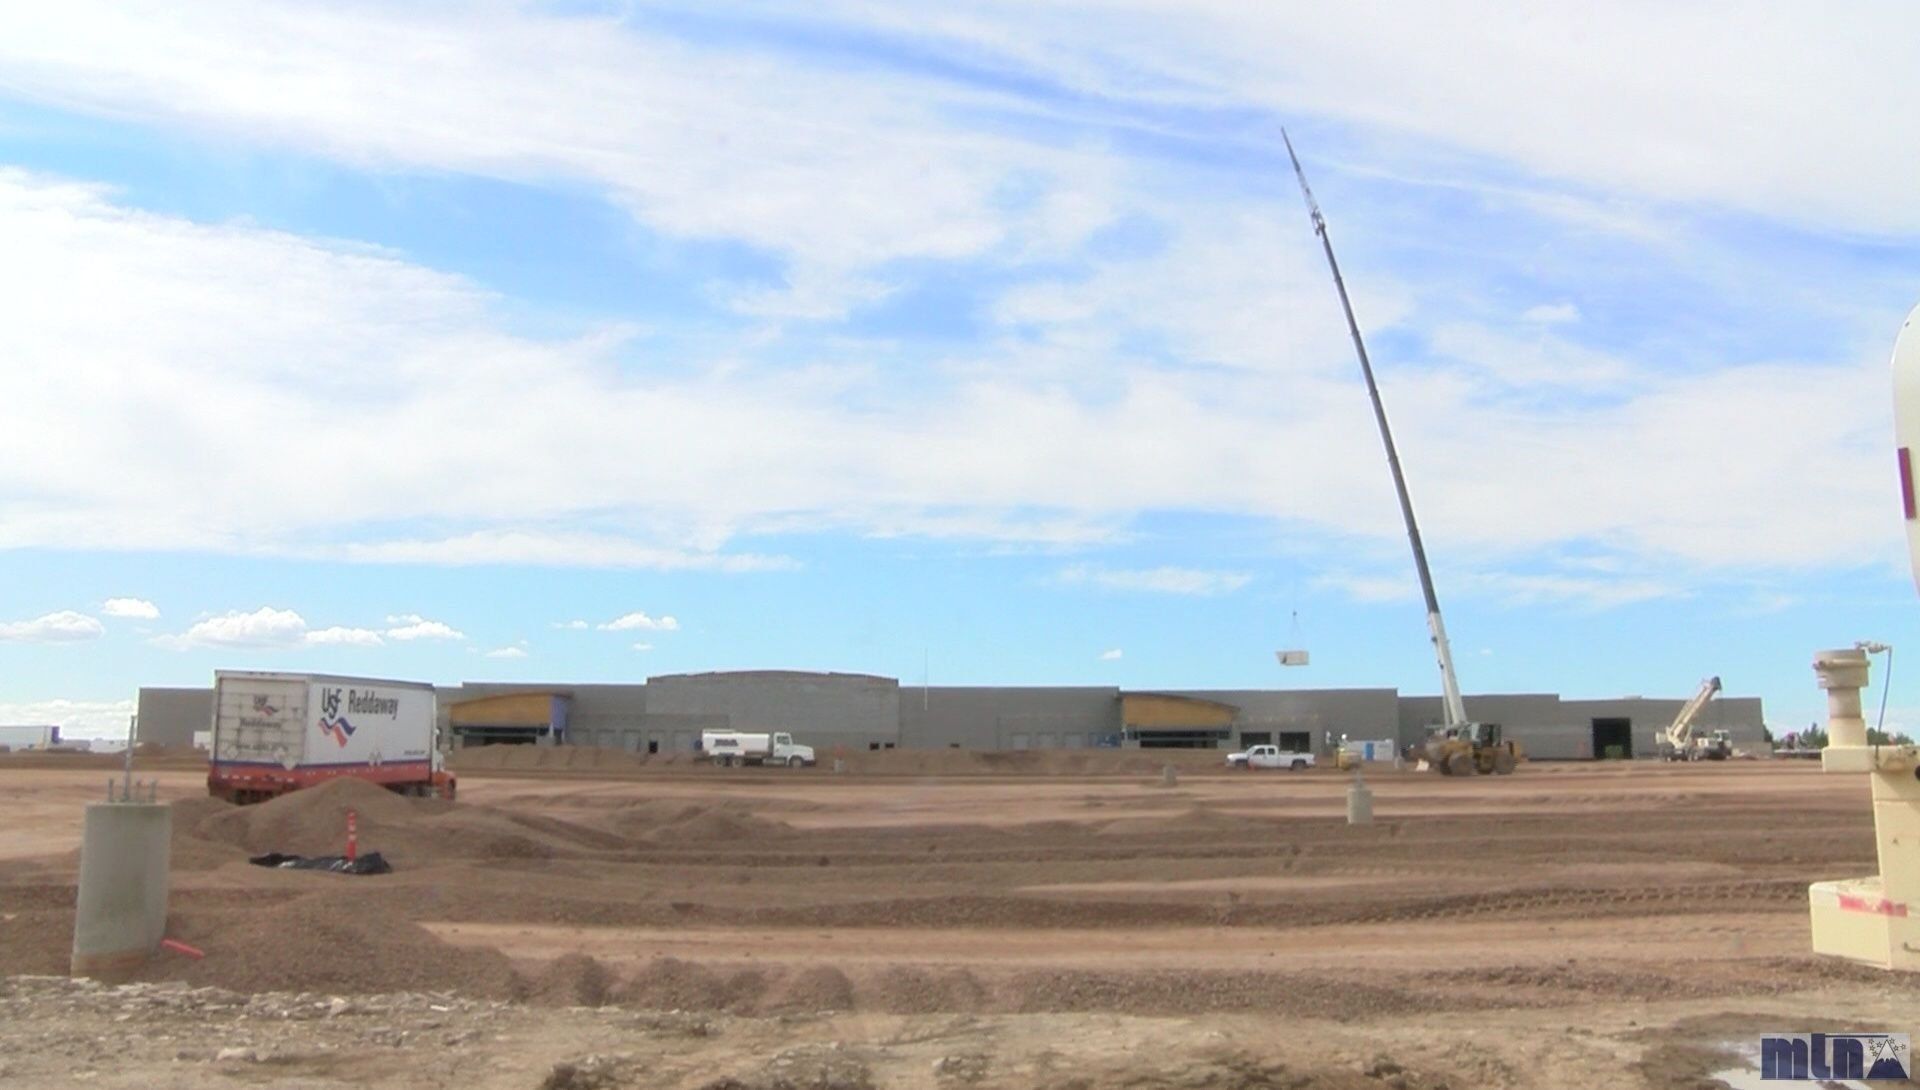 Construction on a new Walmart is also underwayon 26 acres of land along the east end of town, on the south side of 10th Avenue South near57th Street.